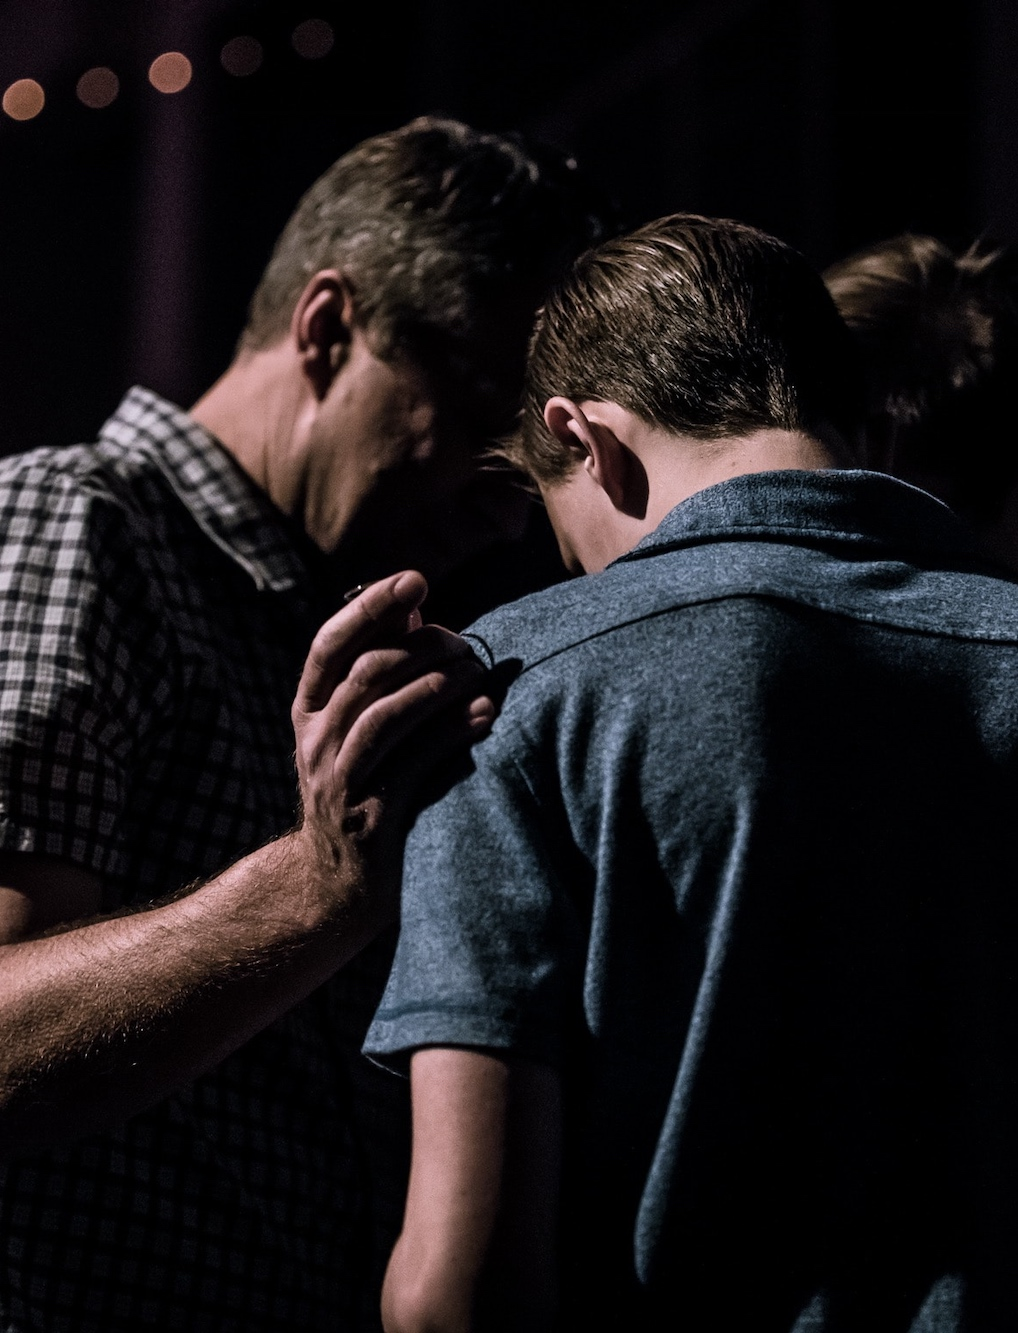 two men huddled together praying